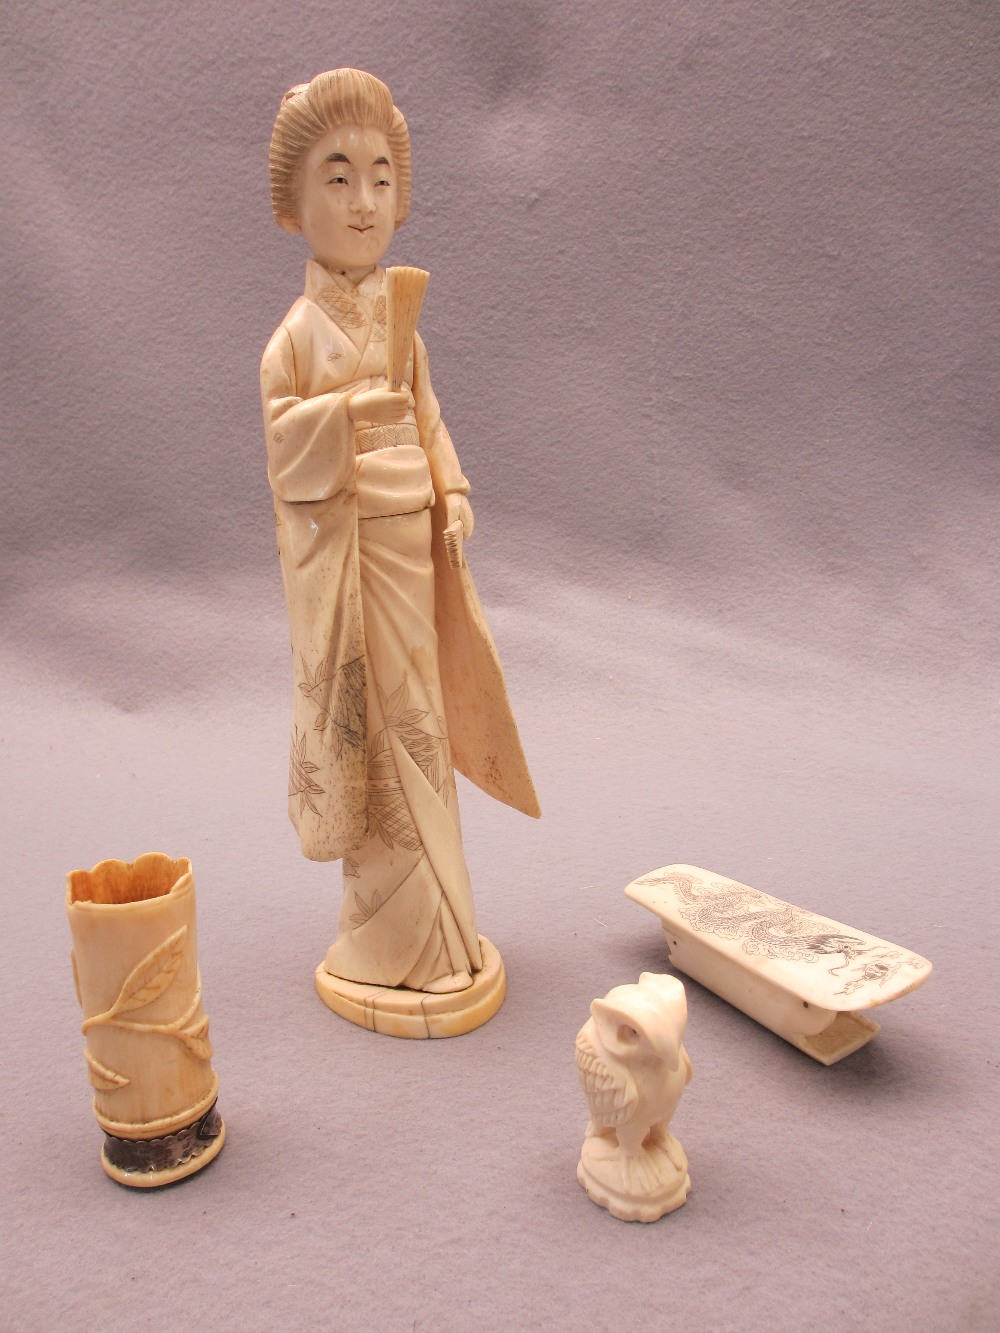 JAPANESE & OTHER IVORY & BONE OKIMONO, FOUR ITEMS - a standing sectional figurine of a Geisha girl